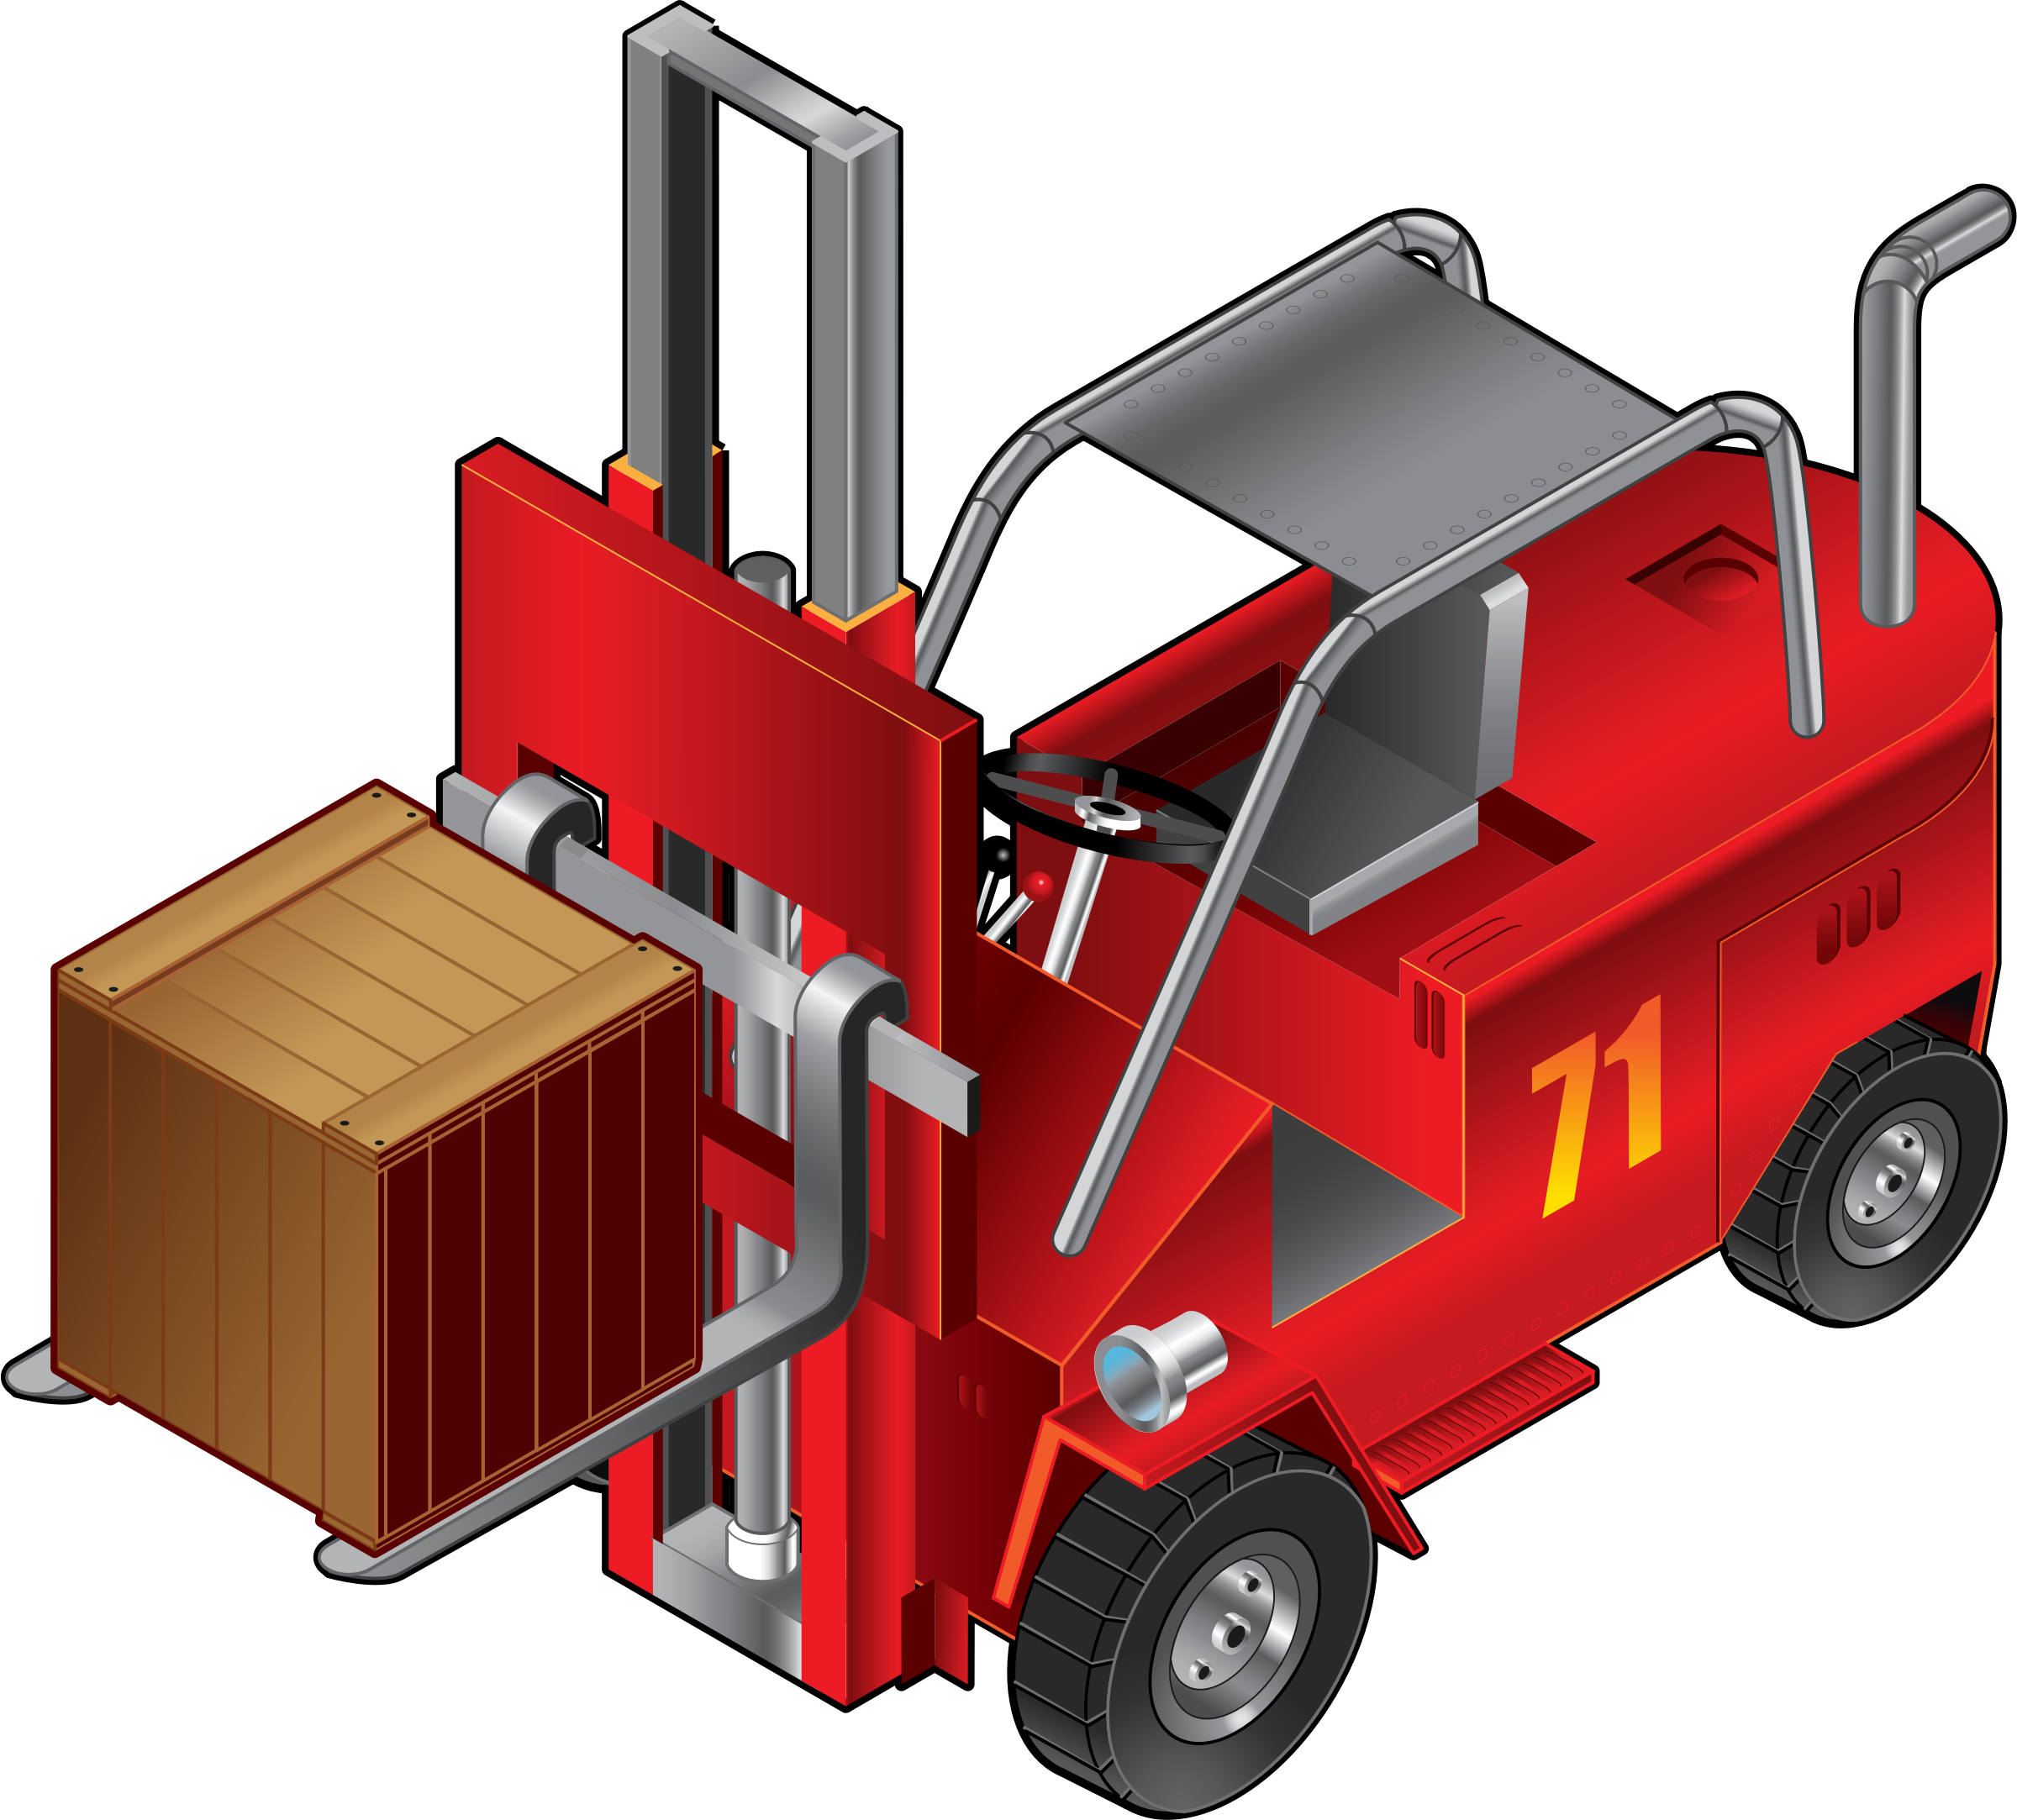 Forklift Truck by Muga